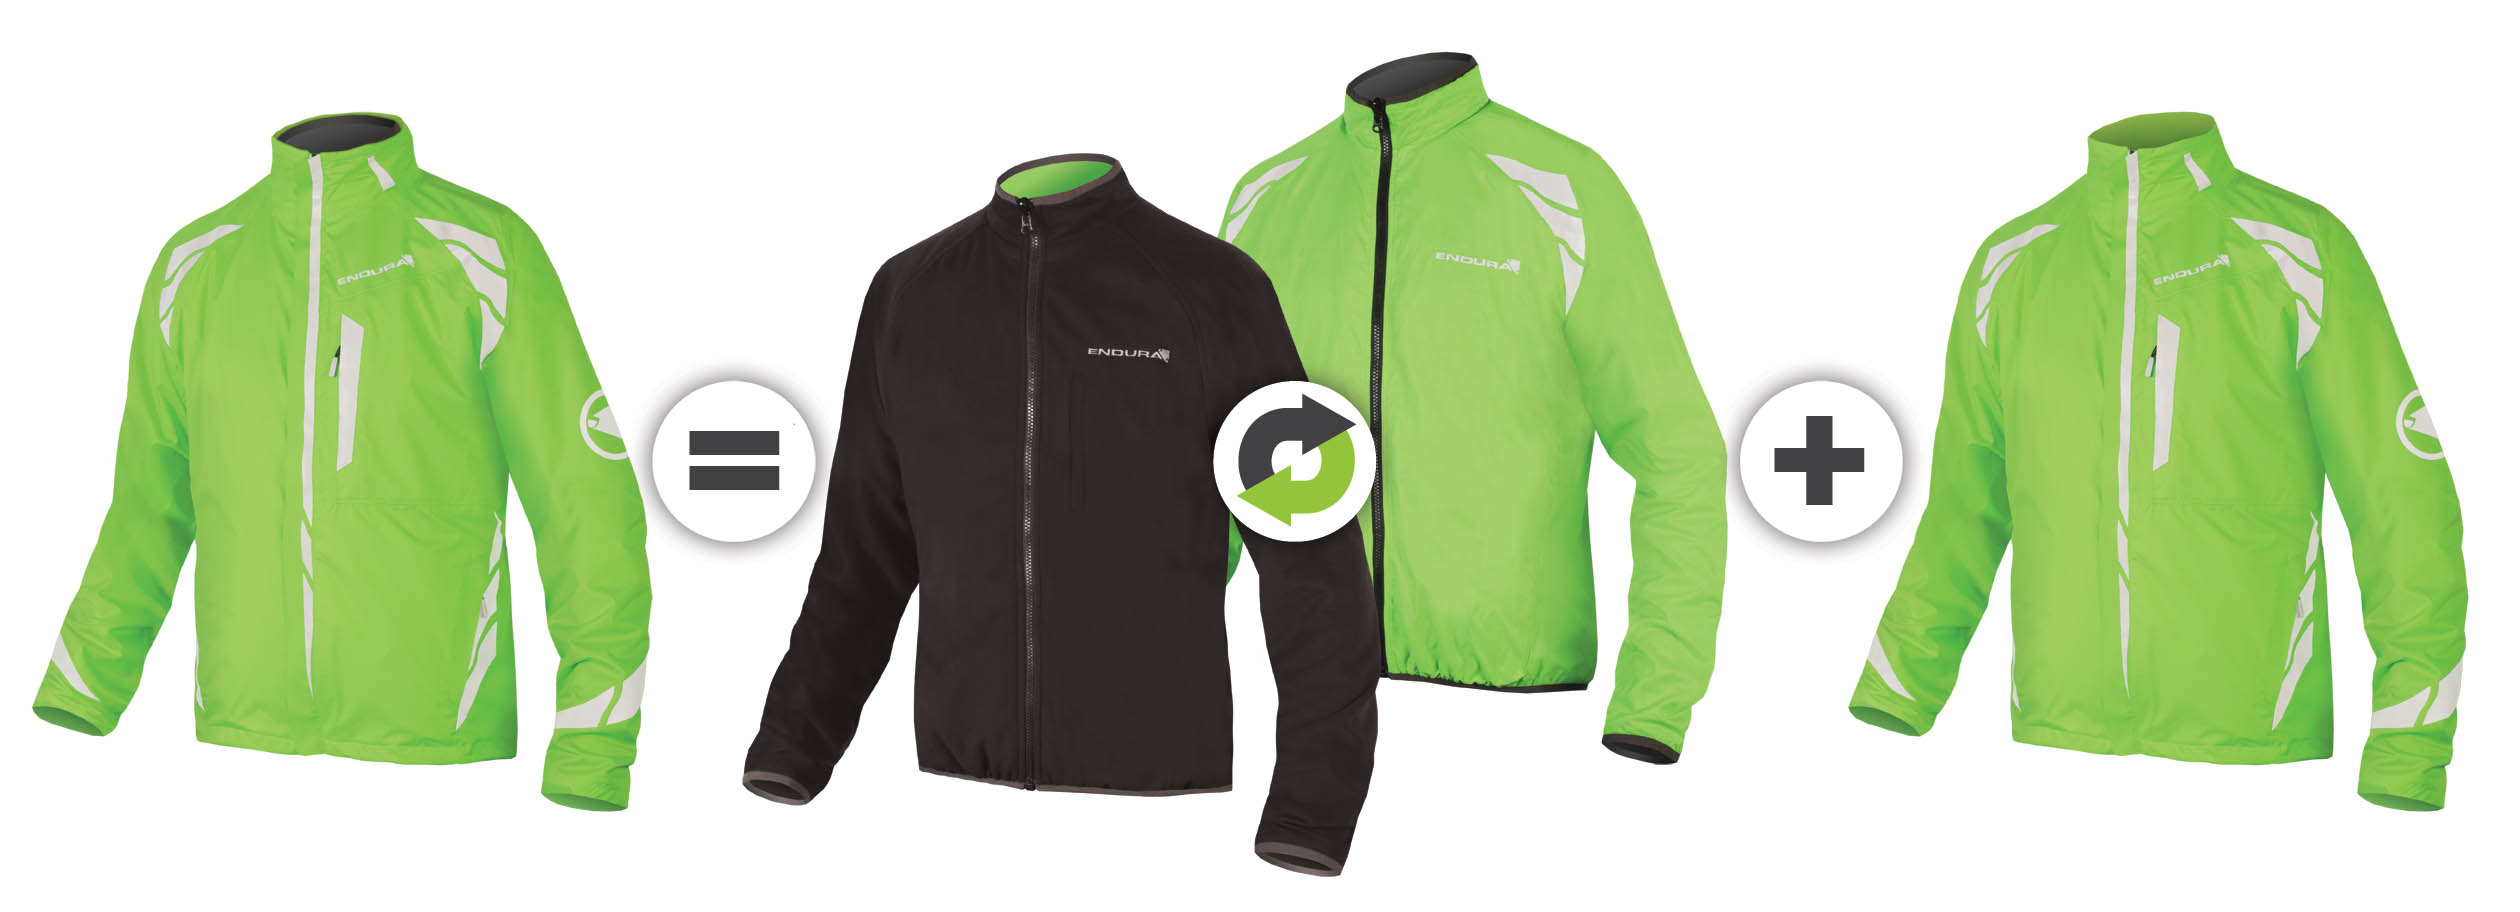 Endura luminite 4 in 1 jacke test